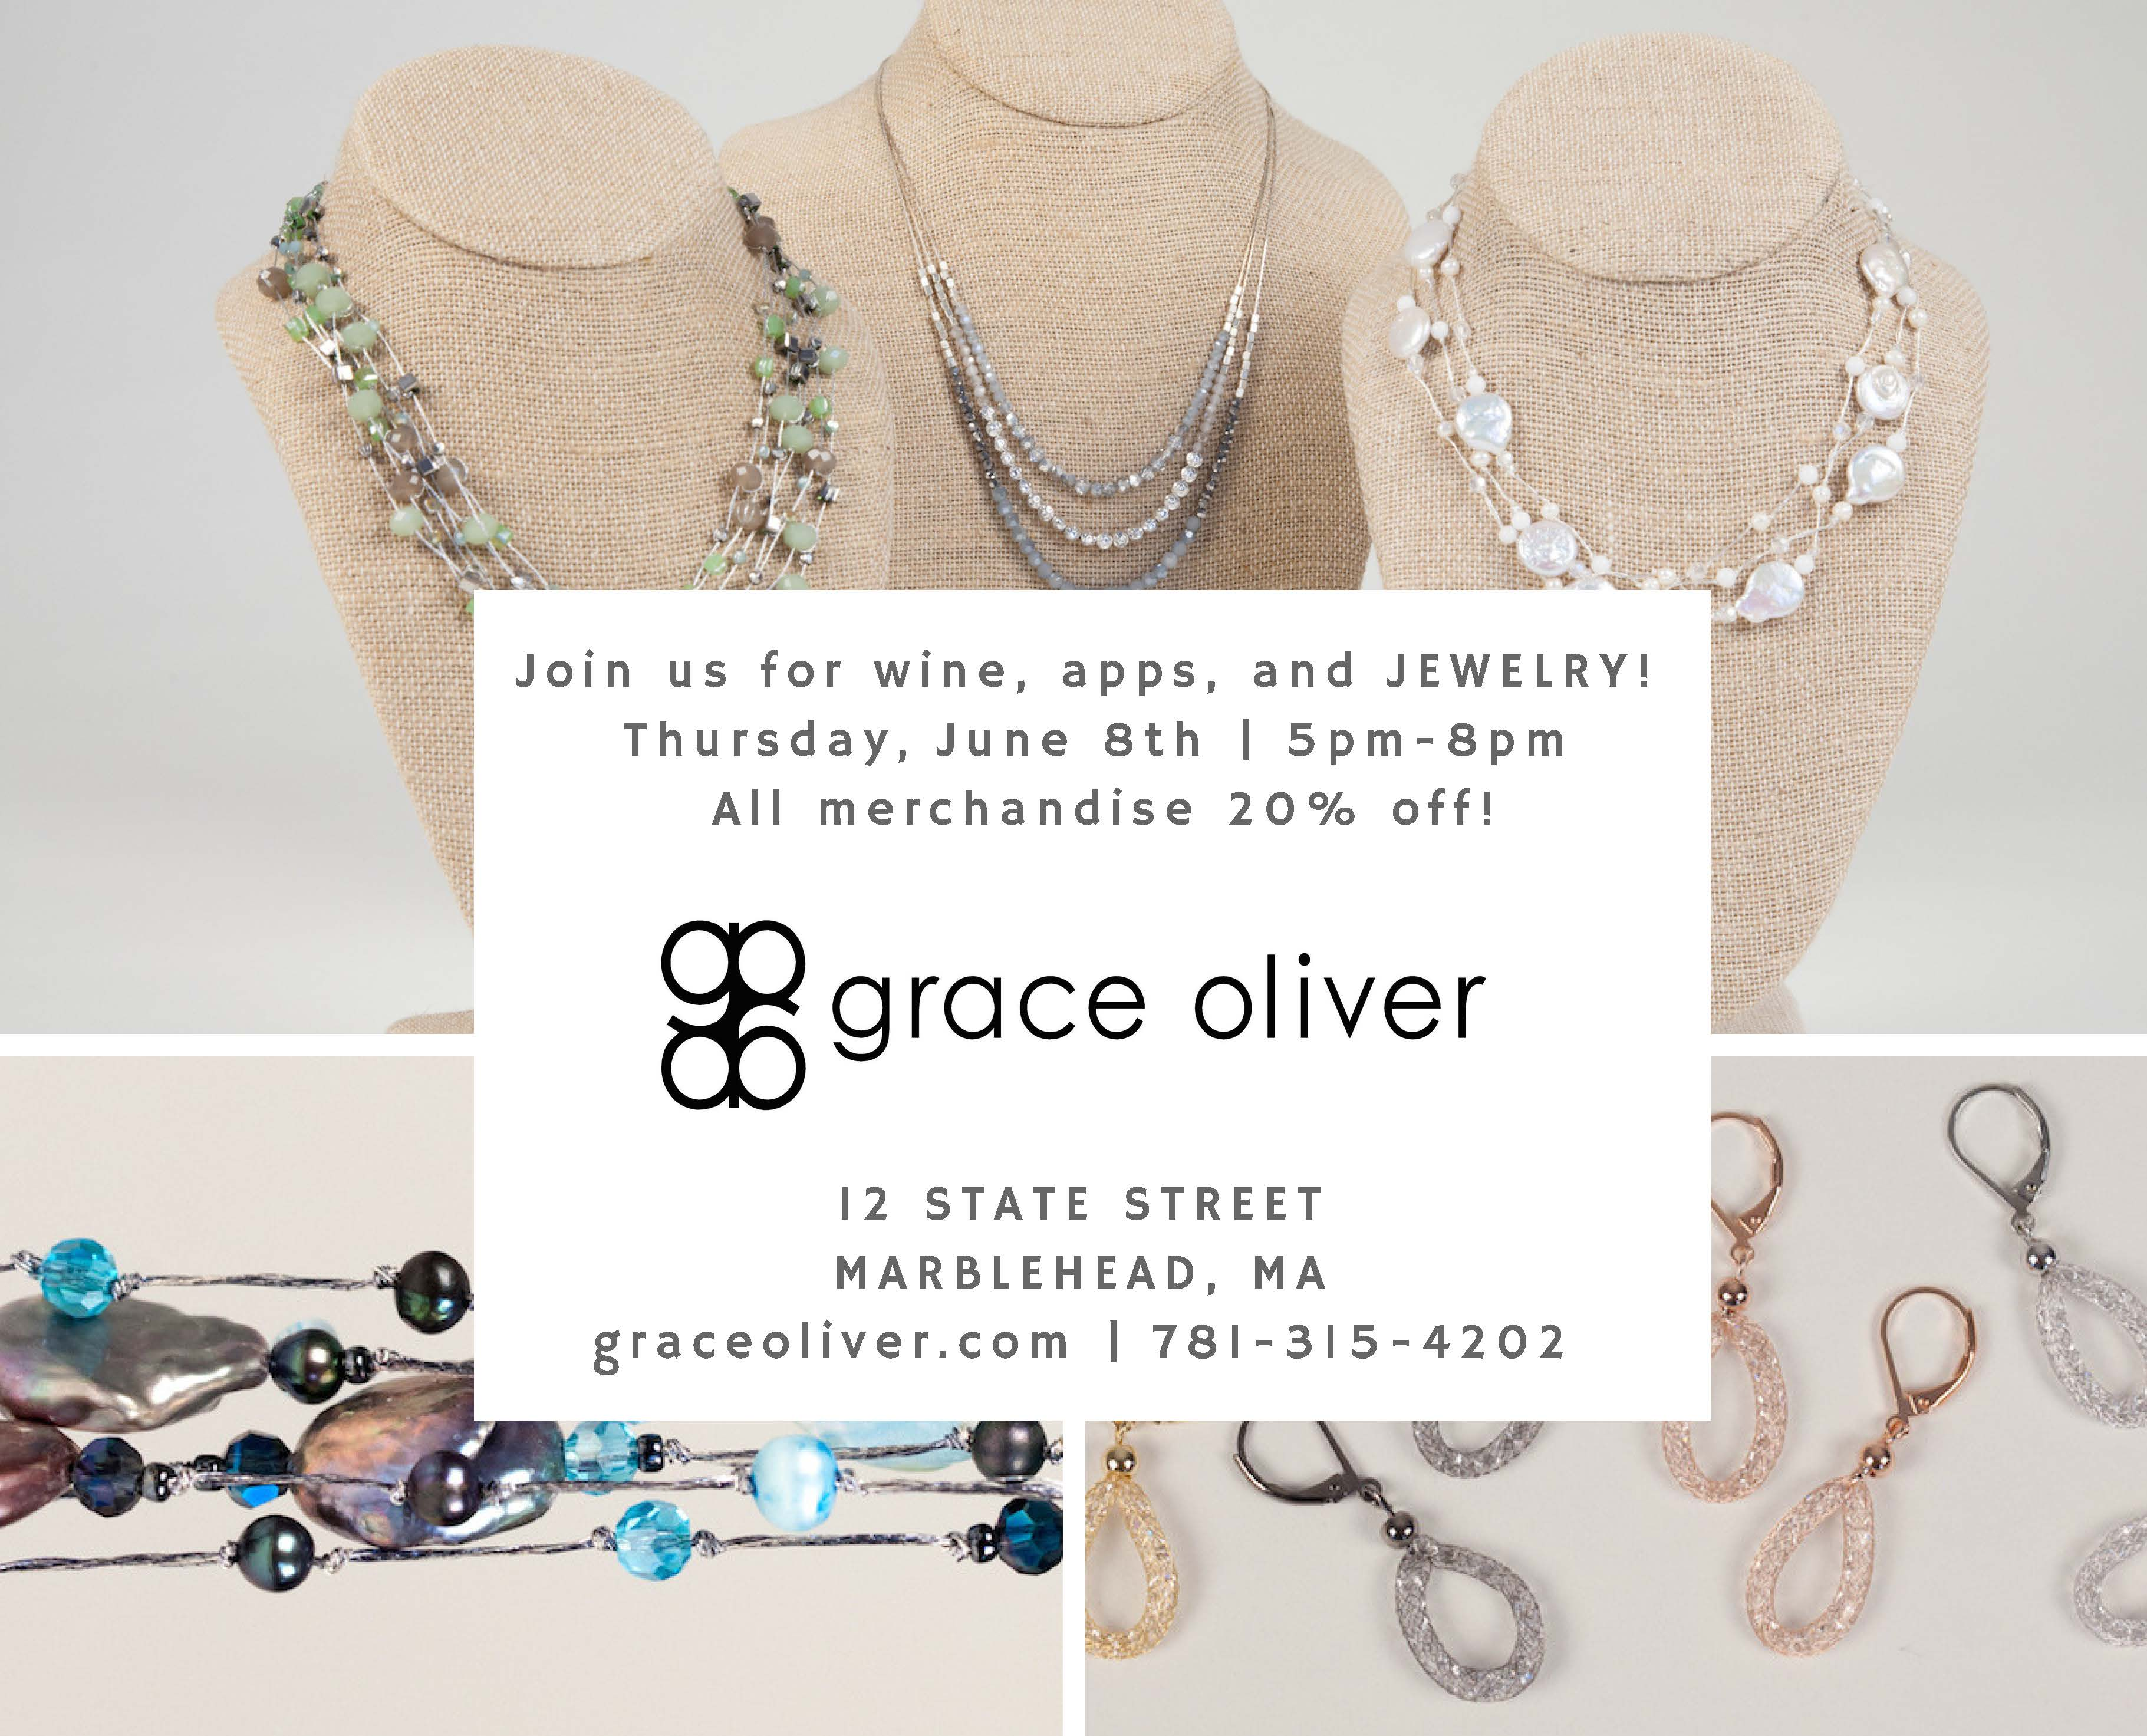 girls-night-out-at-grace-oliver-jewelryjpg.jpg